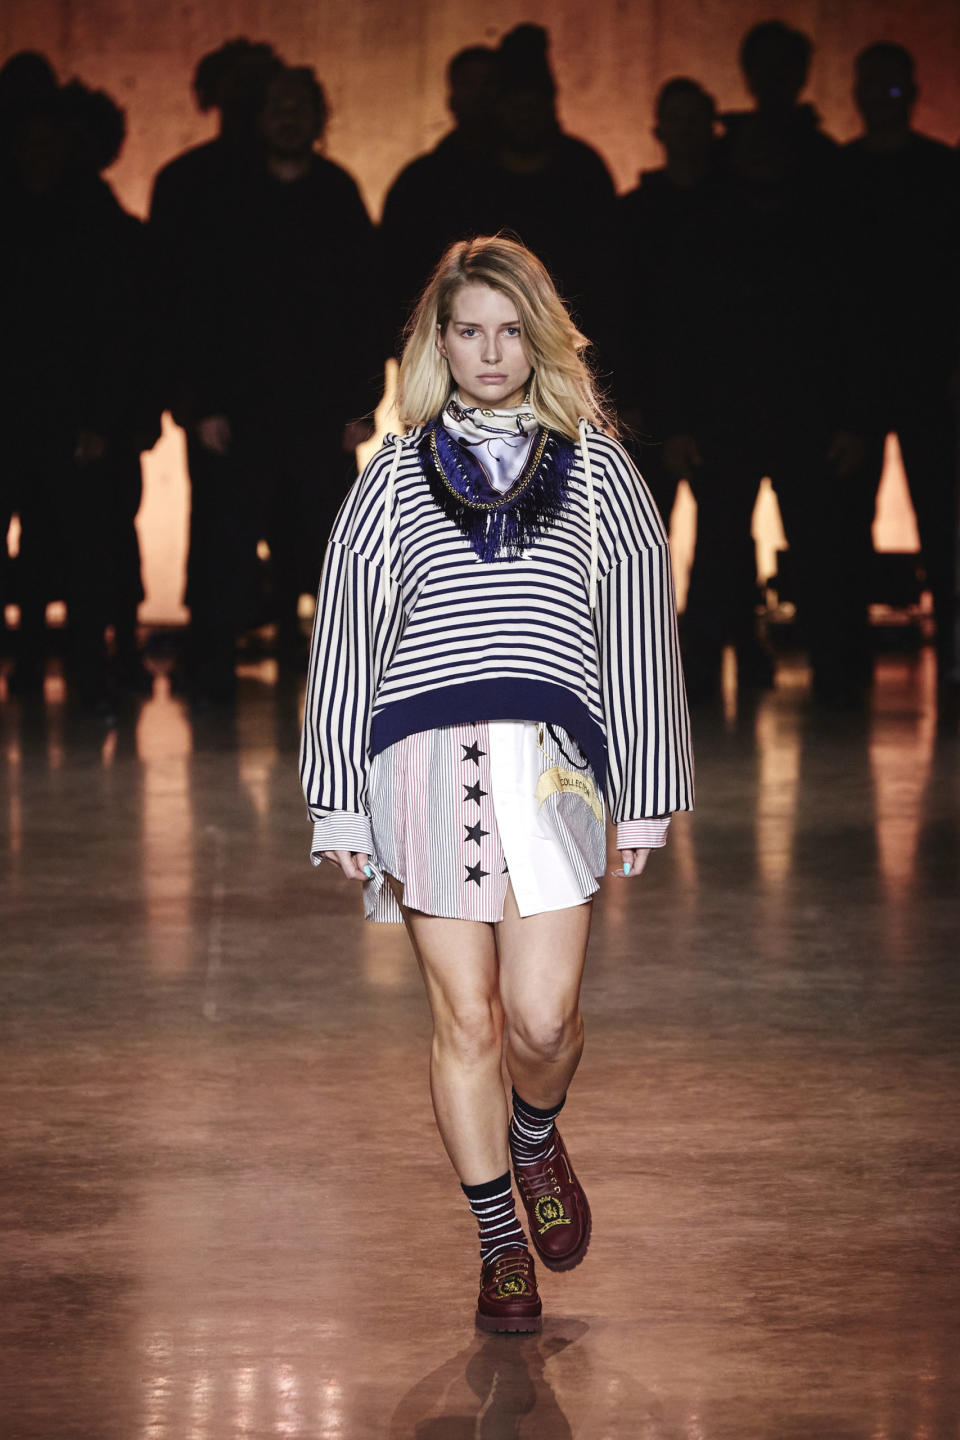 Lottie Moss walks the runway at the Tommy Hilfiger show during London Fashion Week. (Tommy Hilfiger)